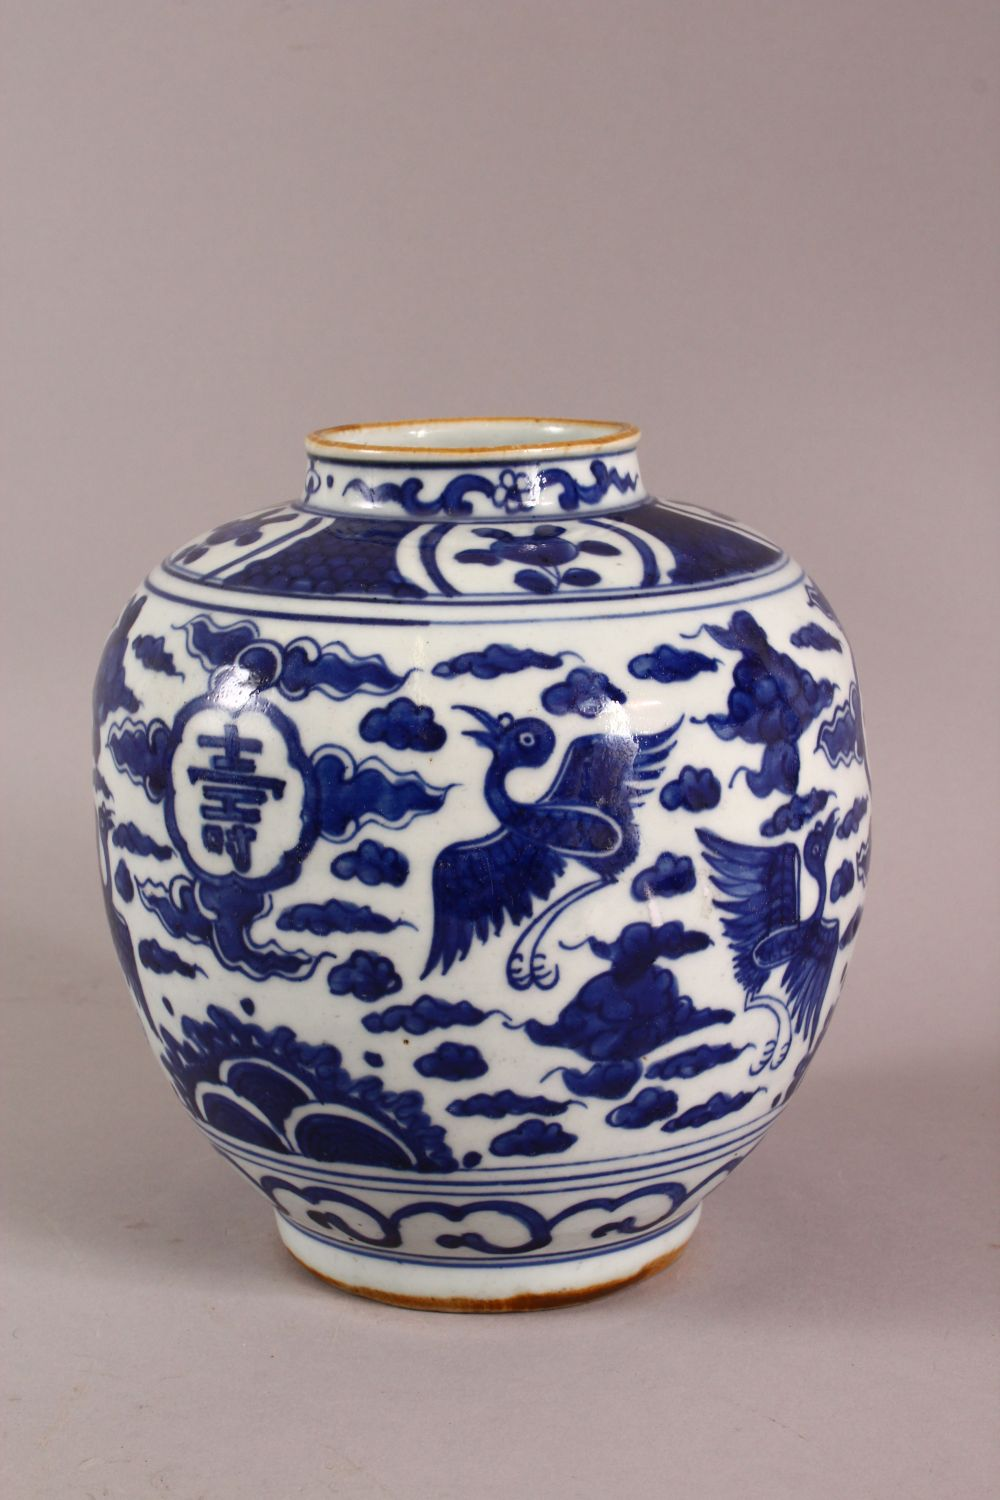 A CHINESE BLUE & WHITE PORCELAIN GINGER JAR, decorated with birds and symbols amongst clouds, rabbit - Image 2 of 7